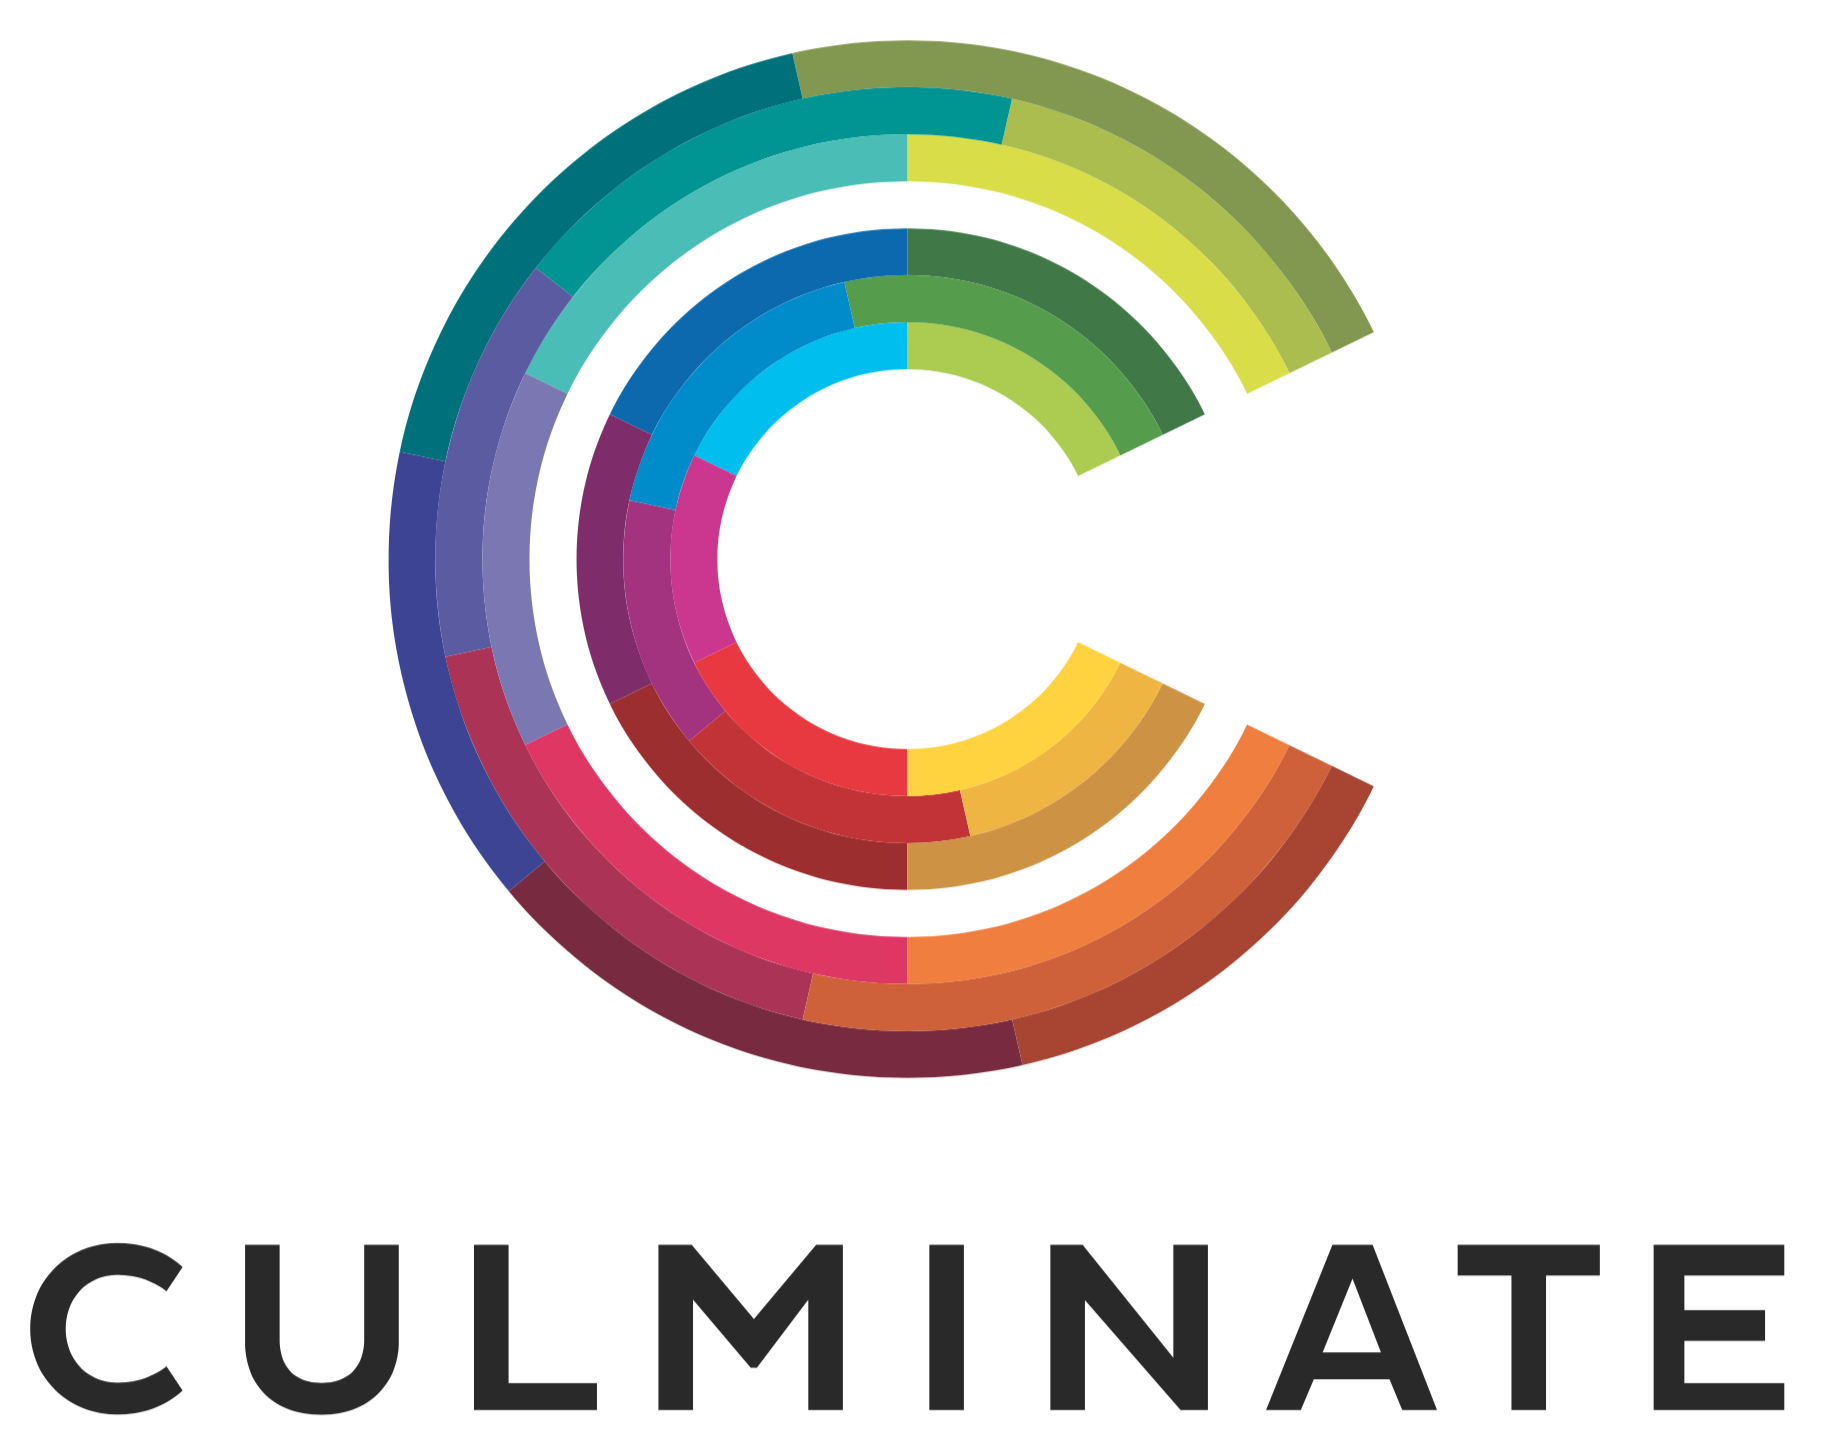 Culminate logo